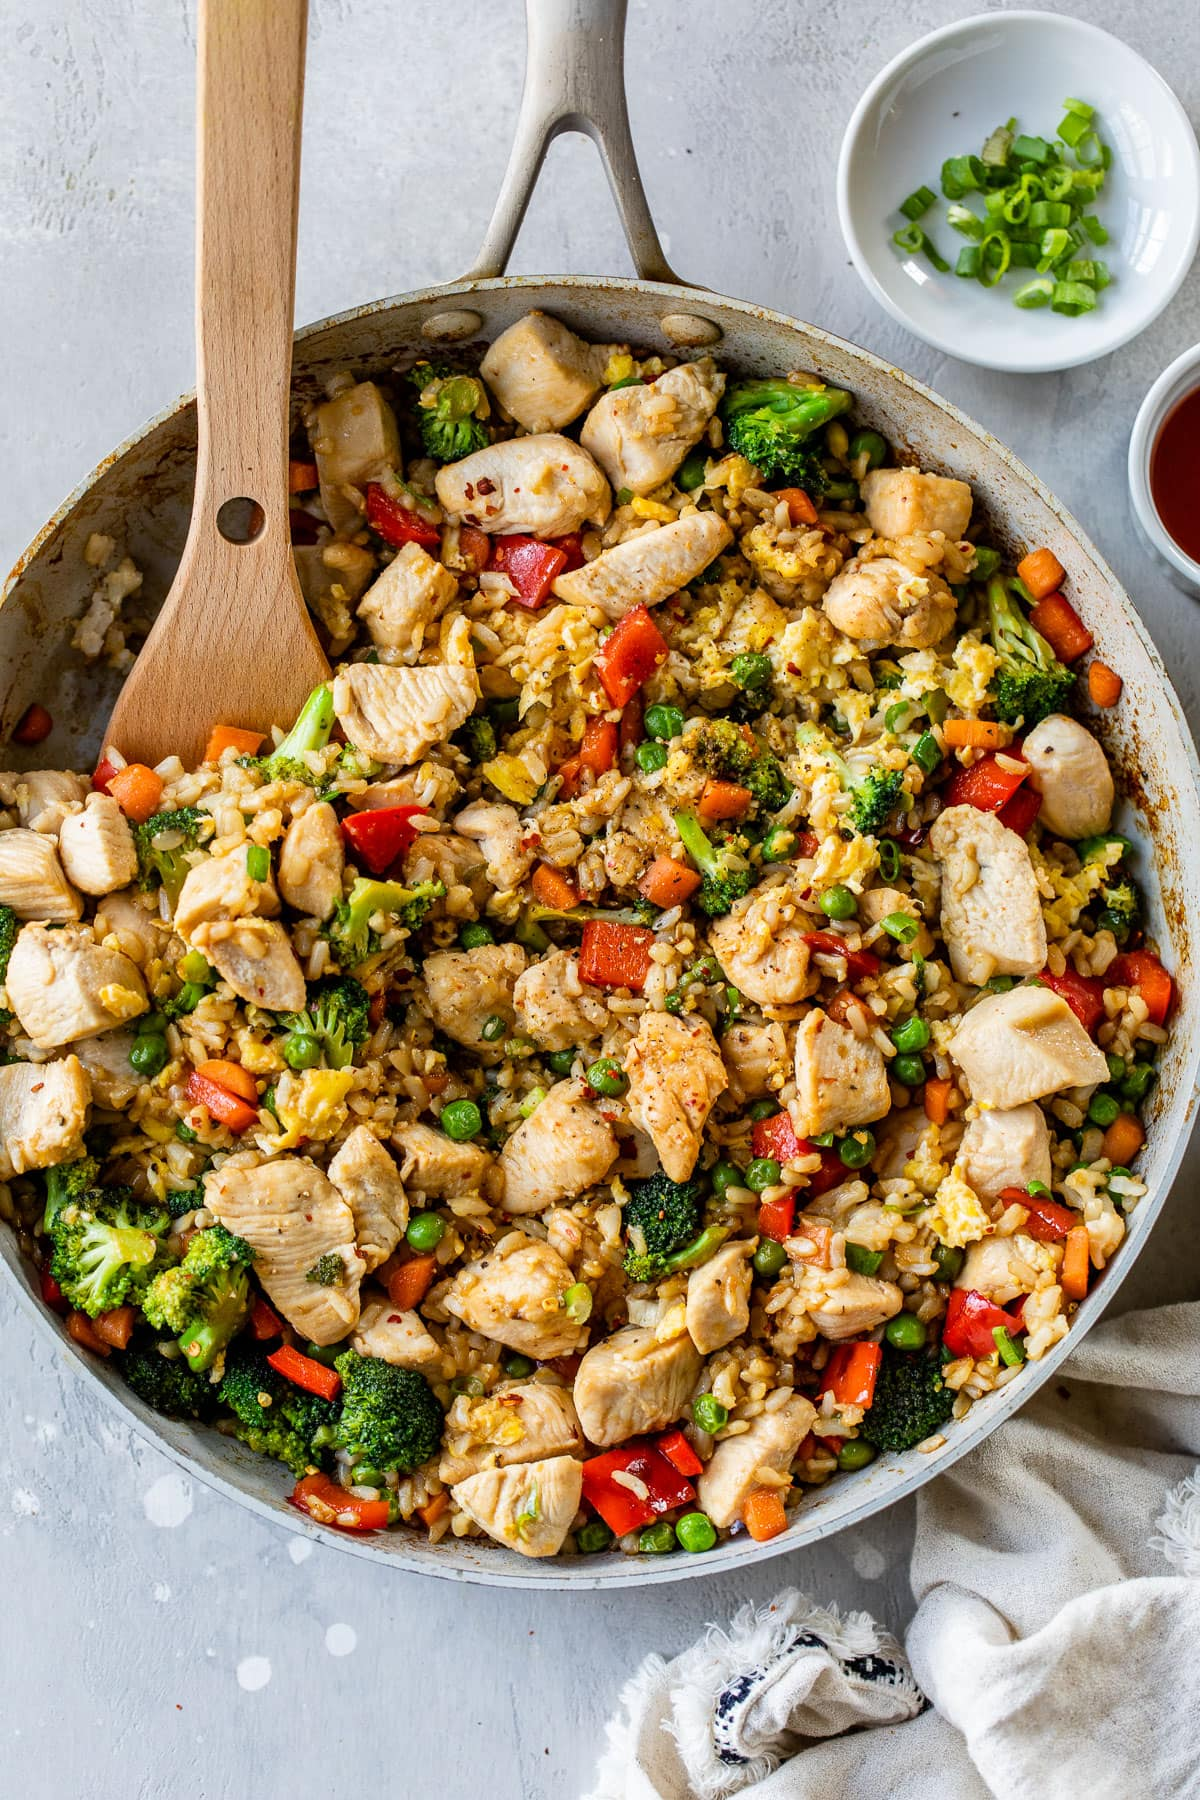 Vegetable and chicken fried rice